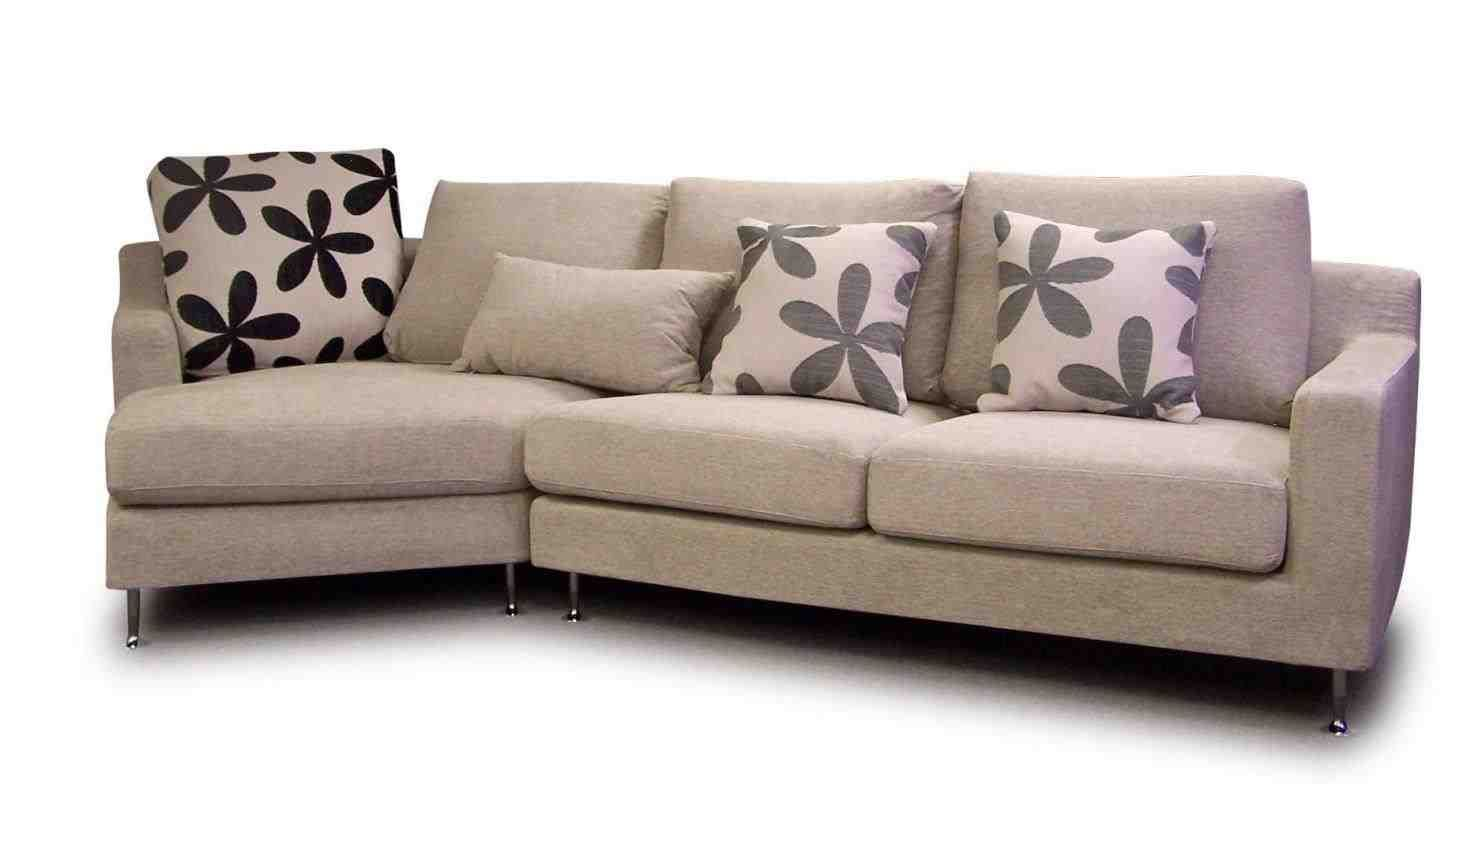 Peachy Cheap Fabric Sofa Full Size Of Sofa Wide Sofa Cheap Fabric Gmtry Best Dining Table And Chair Ideas Images Gmtryco